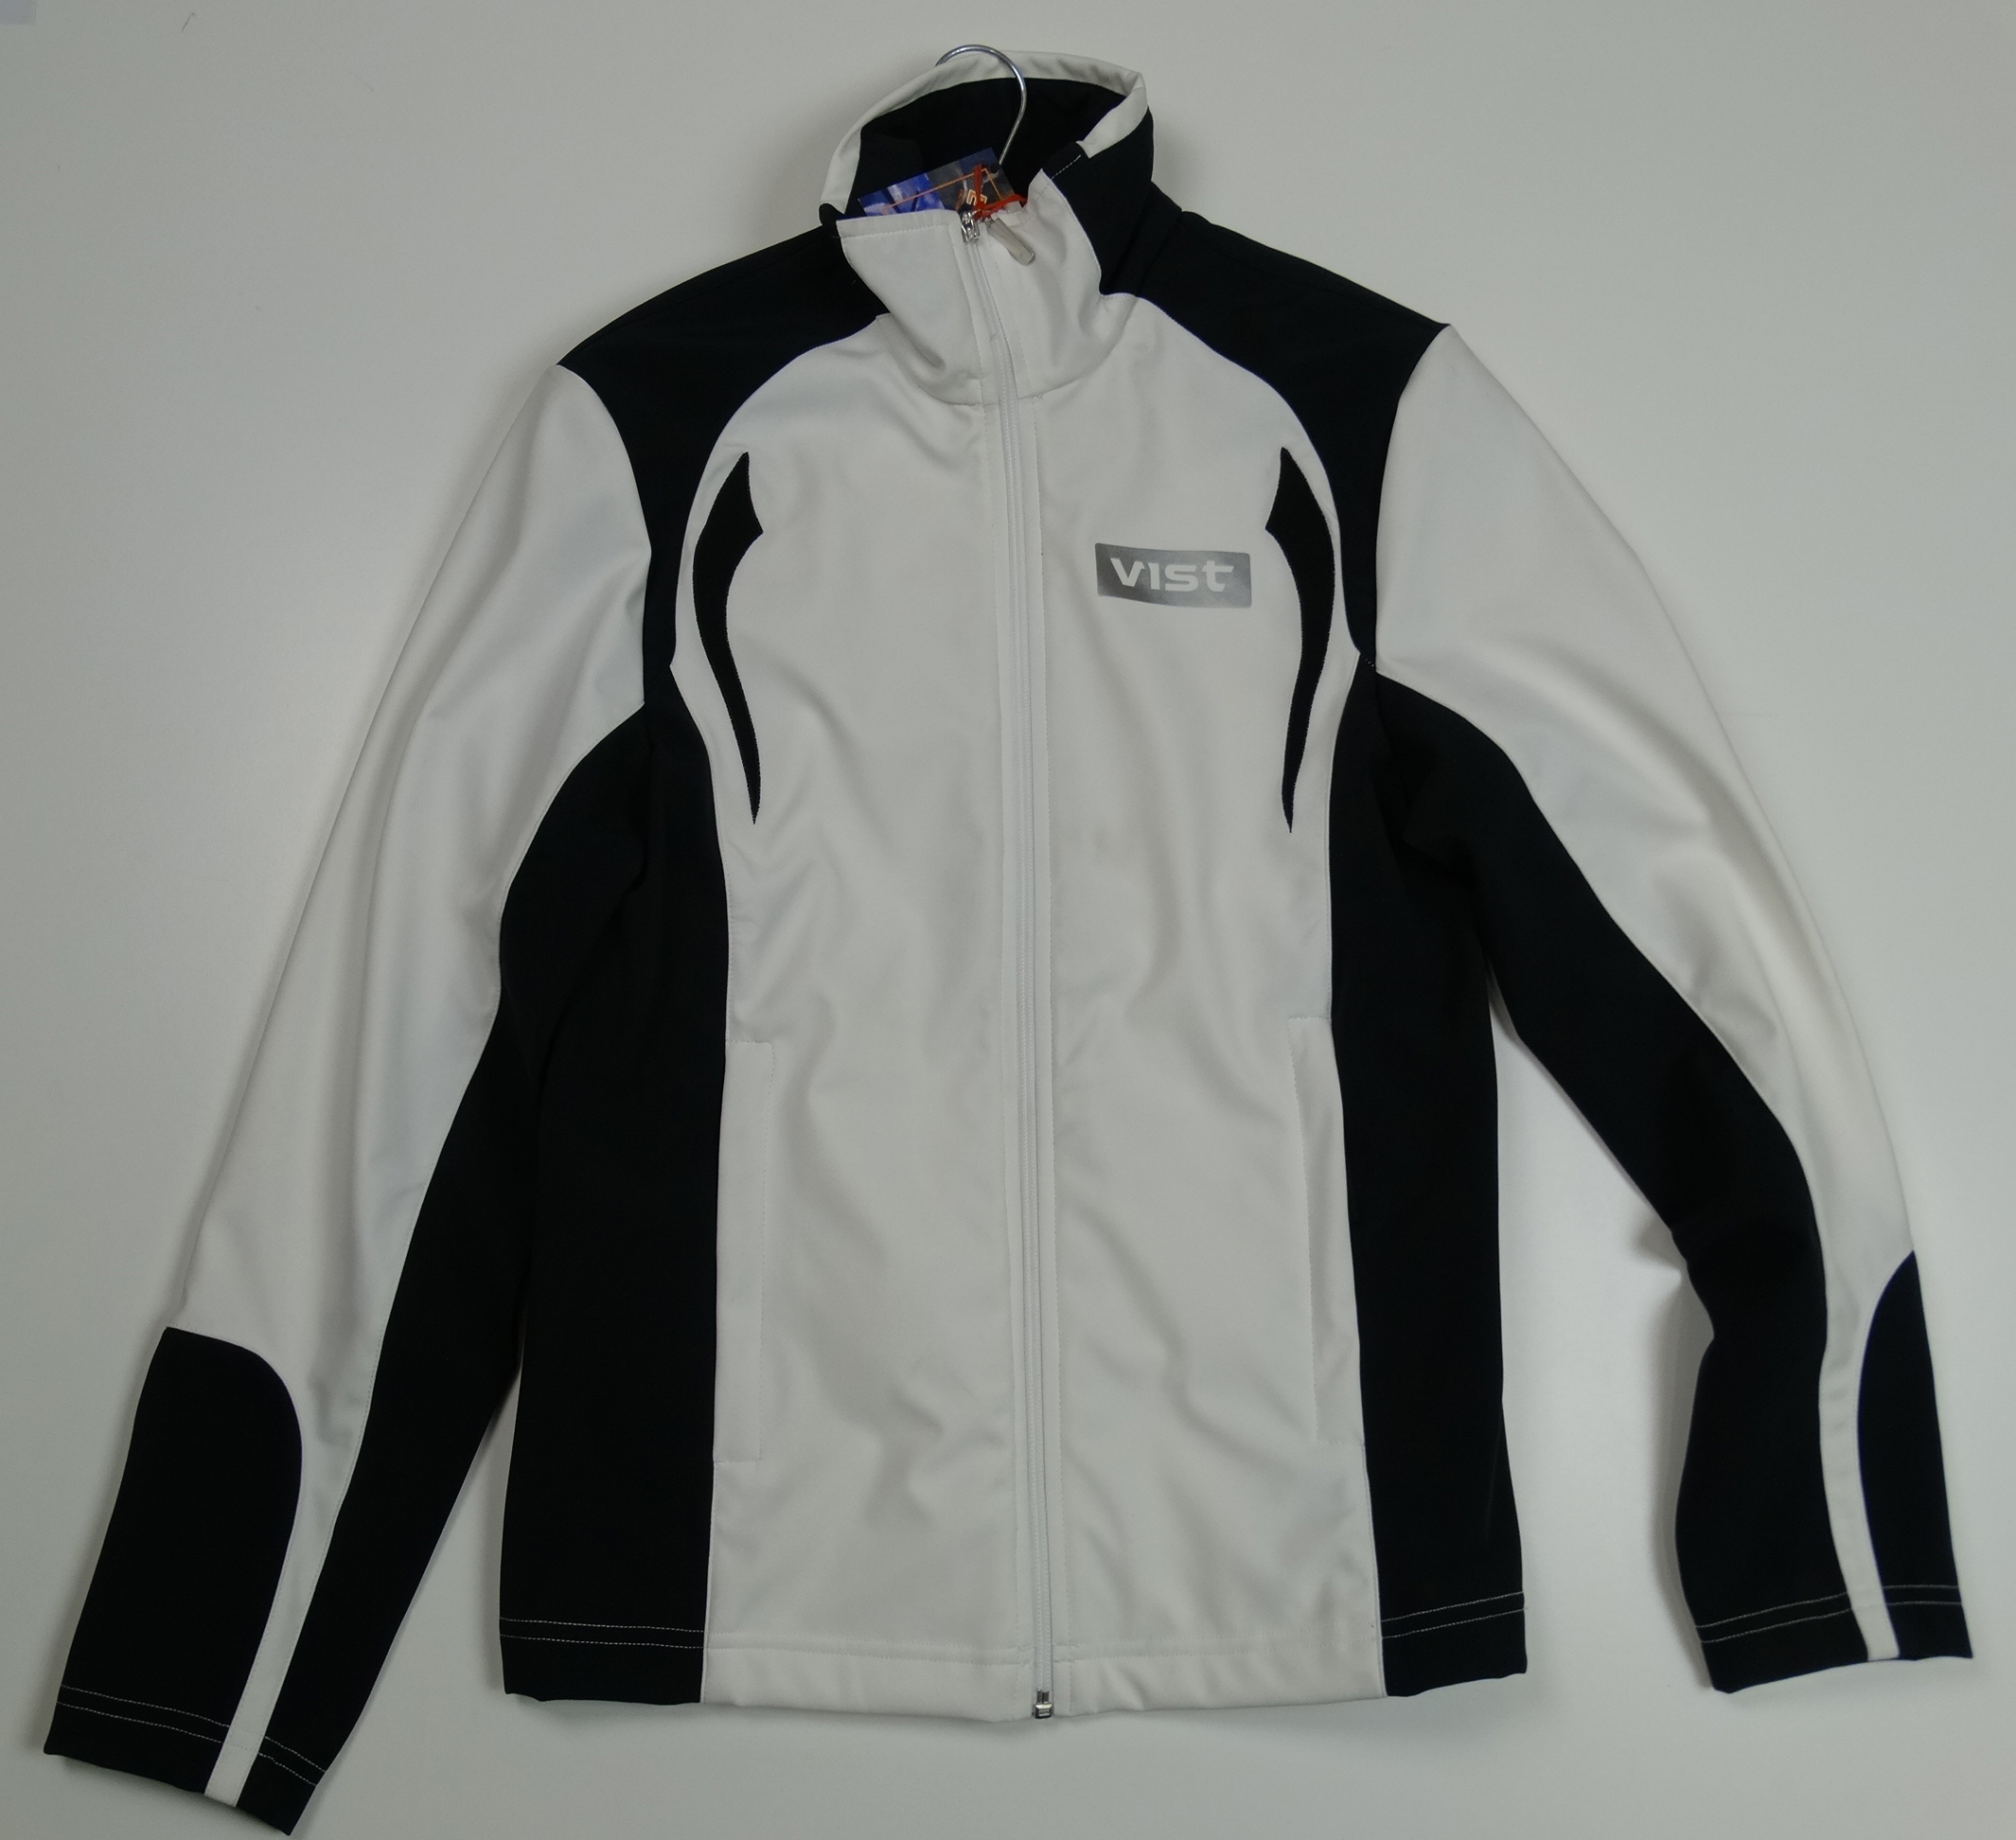 Vist Cosmo Soft Softshell Jacket